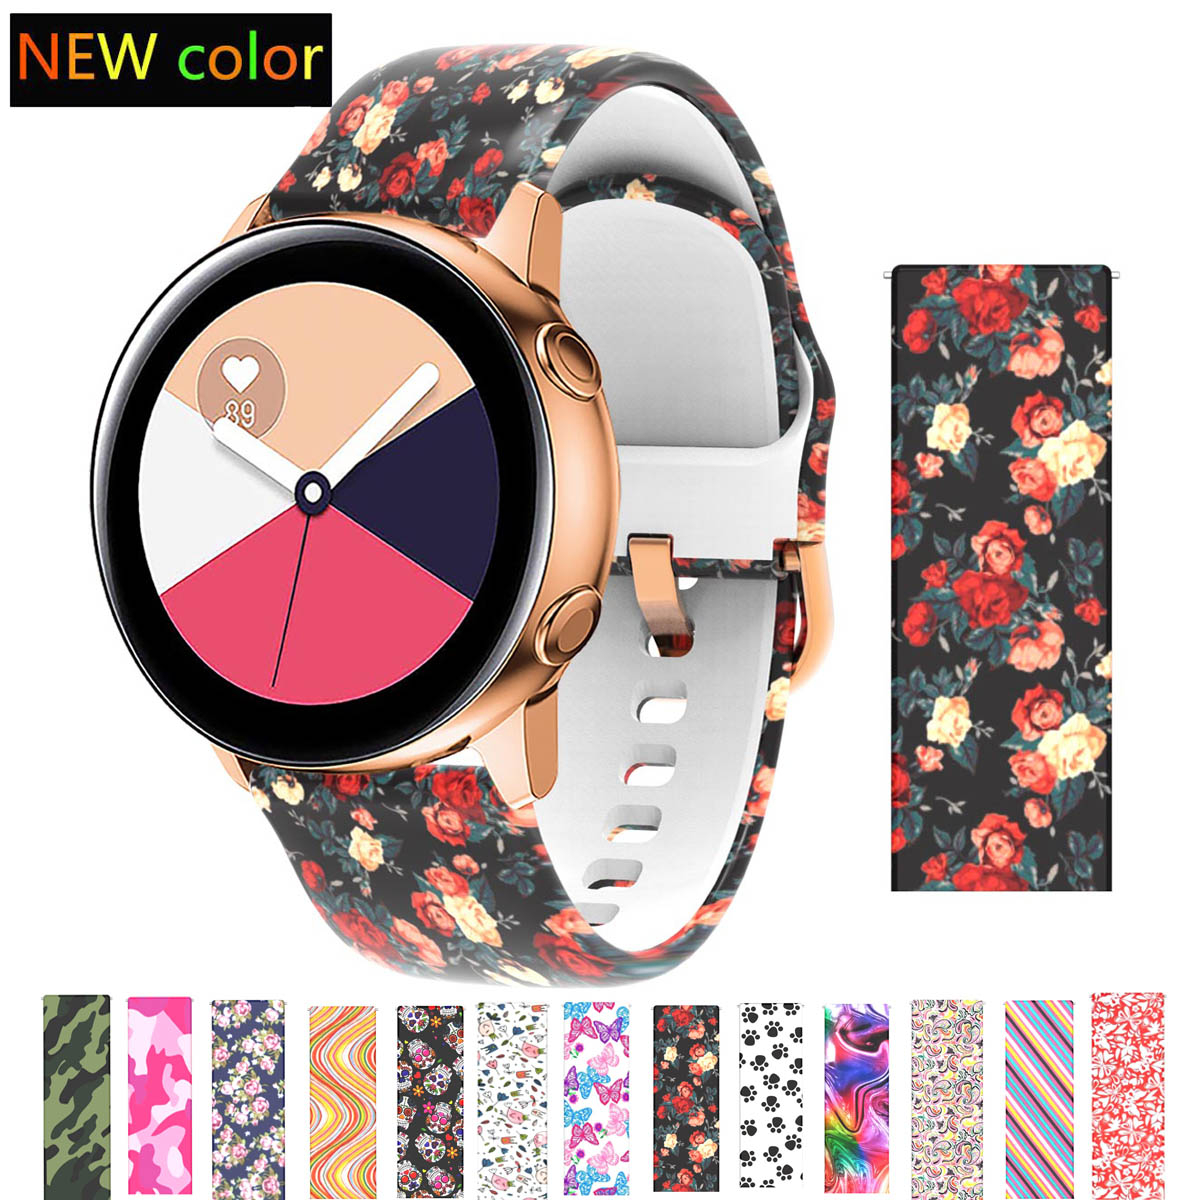 Silicone Watch Strap for Samsung Galaxy 3 Active watch 42 Band 20mm Bands For Amazfit Bip S Gear Sport For Huawei vivoactive 3